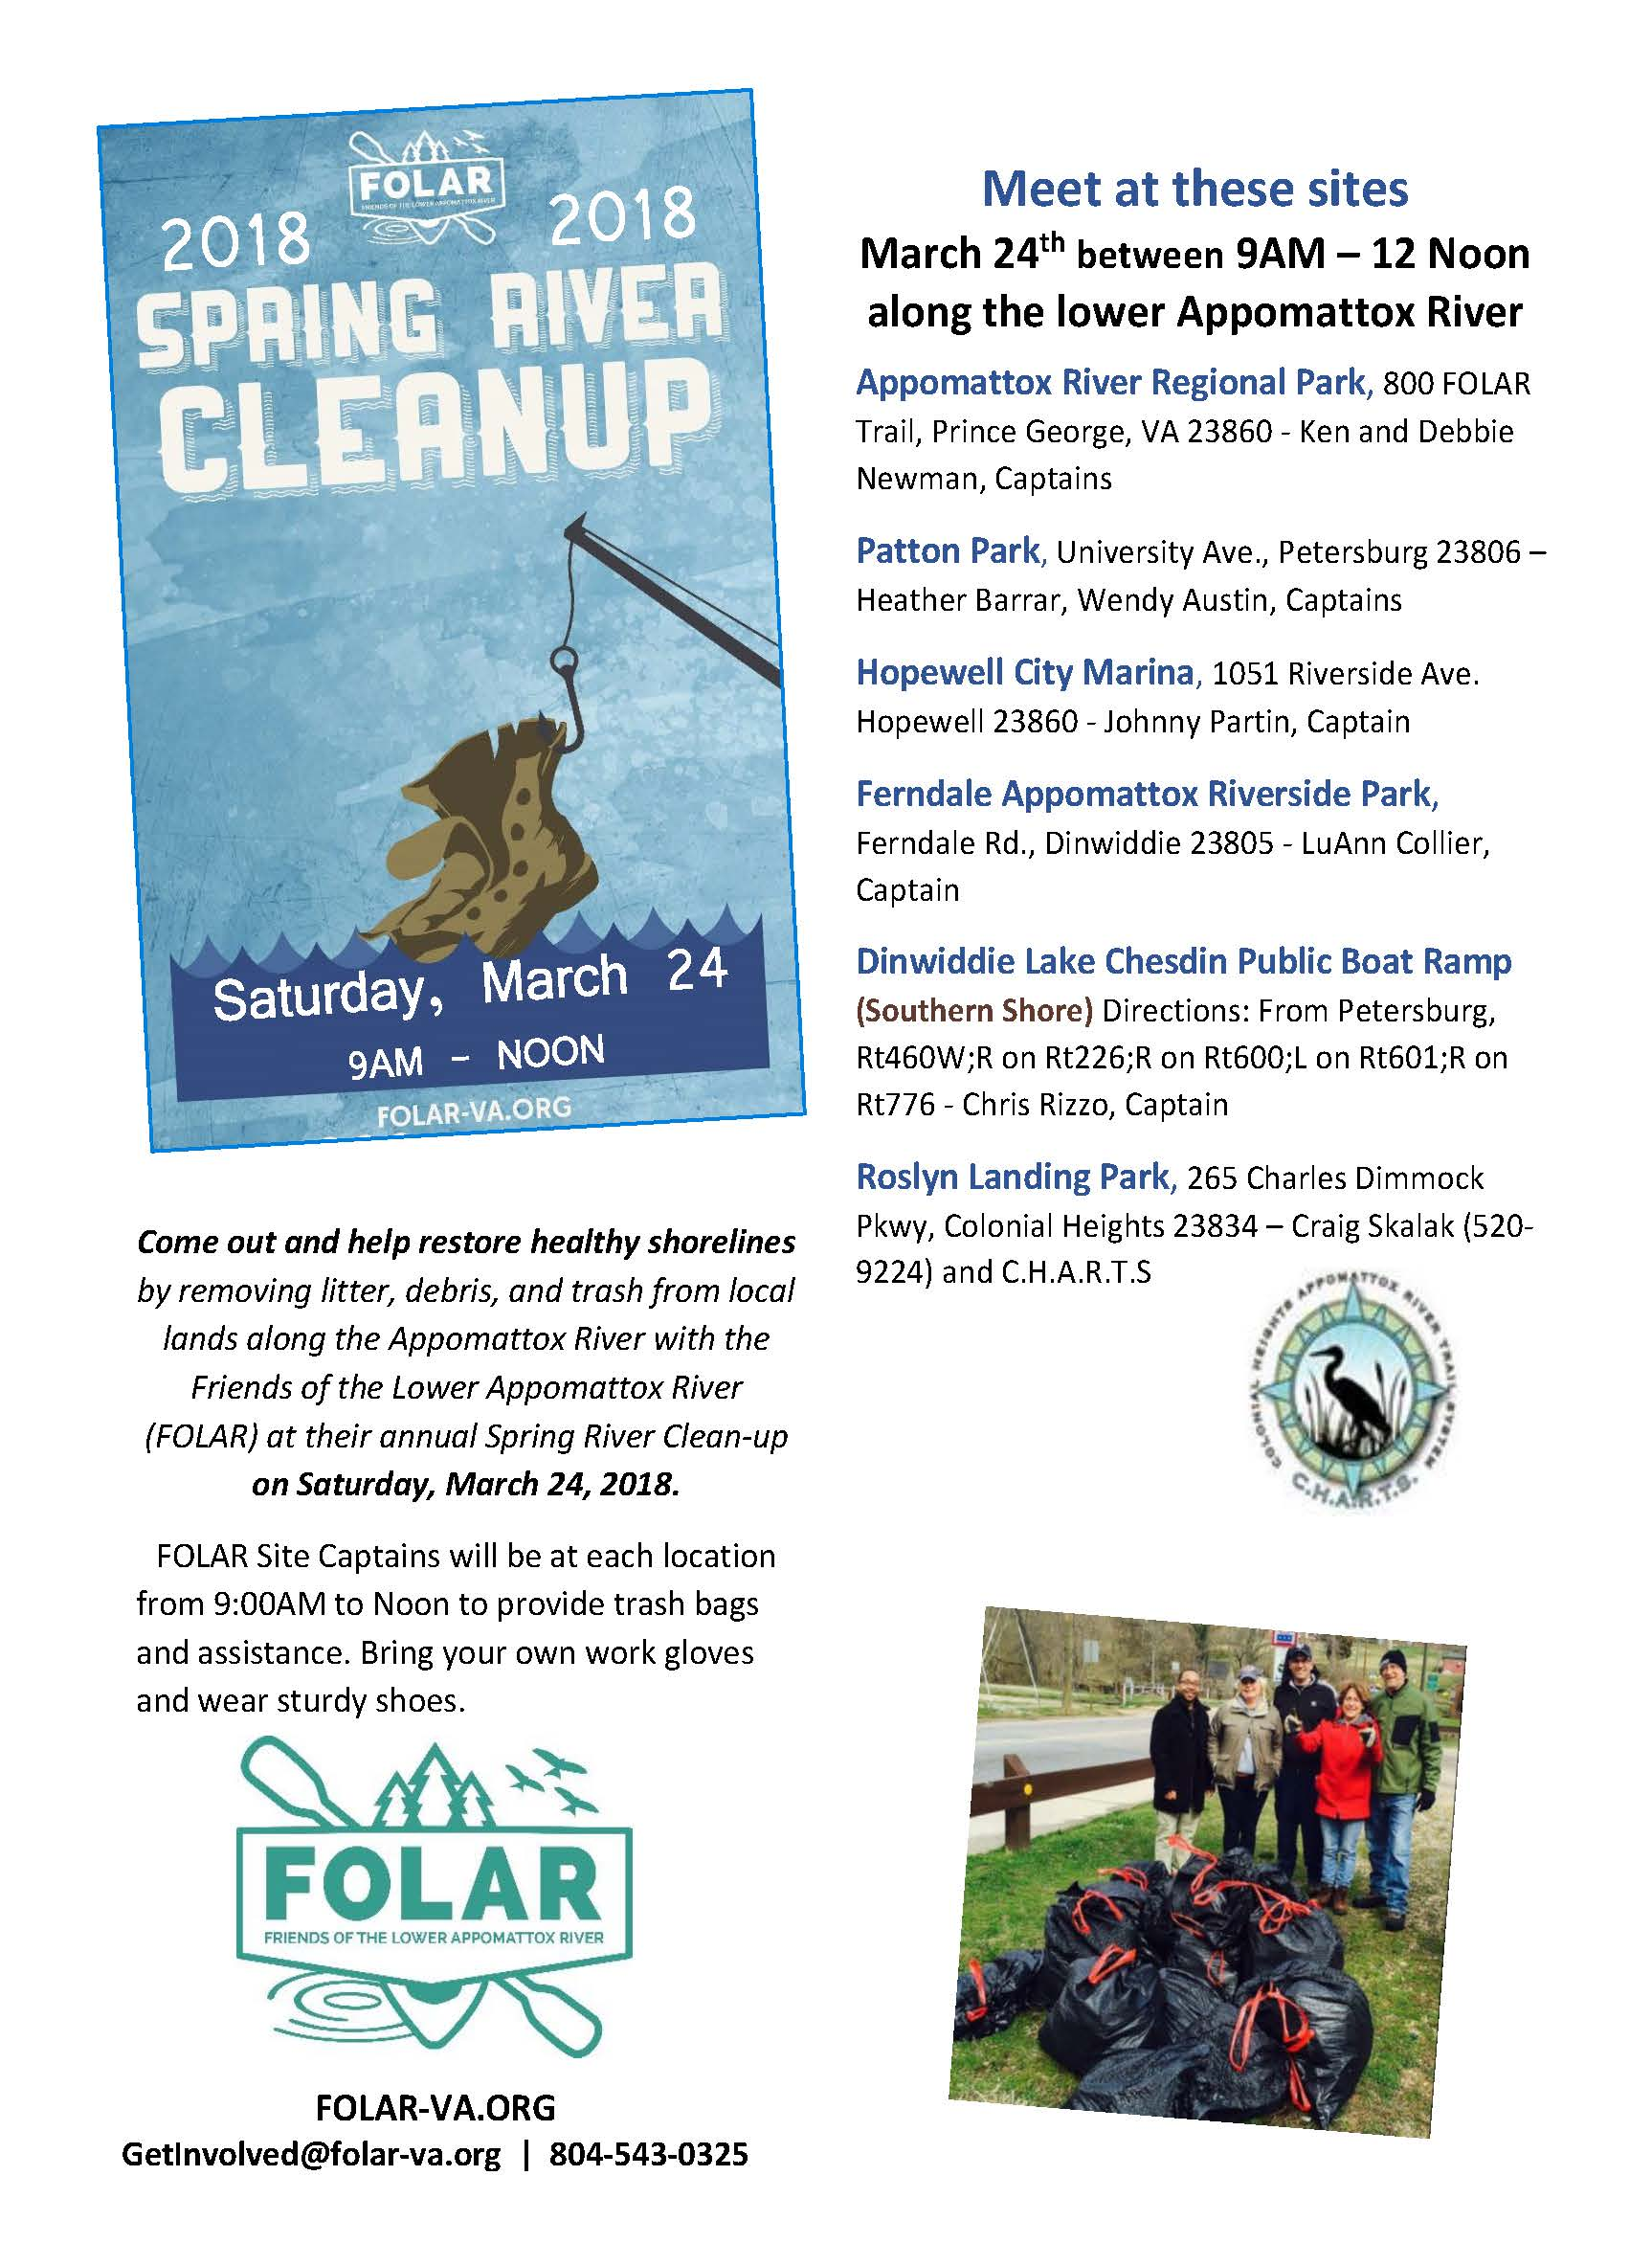 FOLAR 2018 Spring Cleanup